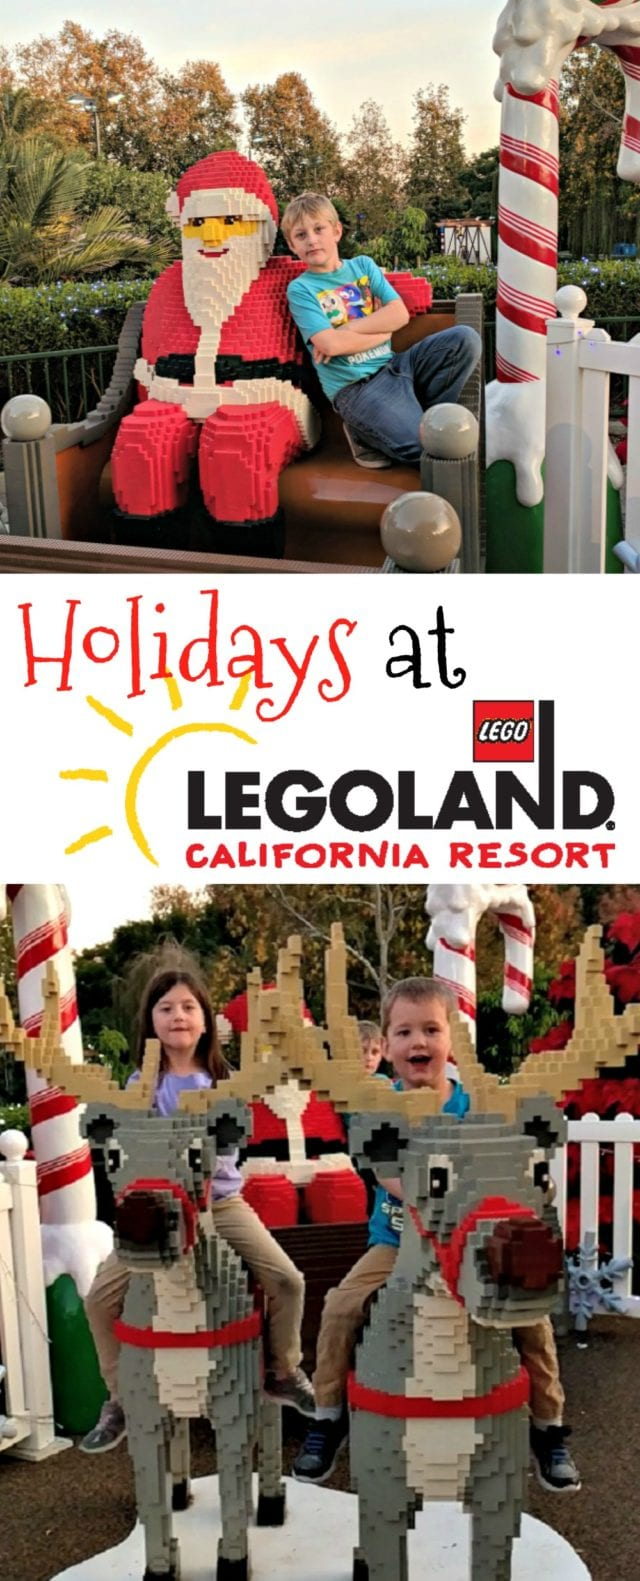 LEGOLAND is a fun place to visit during the holidays. Check out all the fun touches they add to bring some holiday cheer! #HolidaysAtLEGOLAND #ad